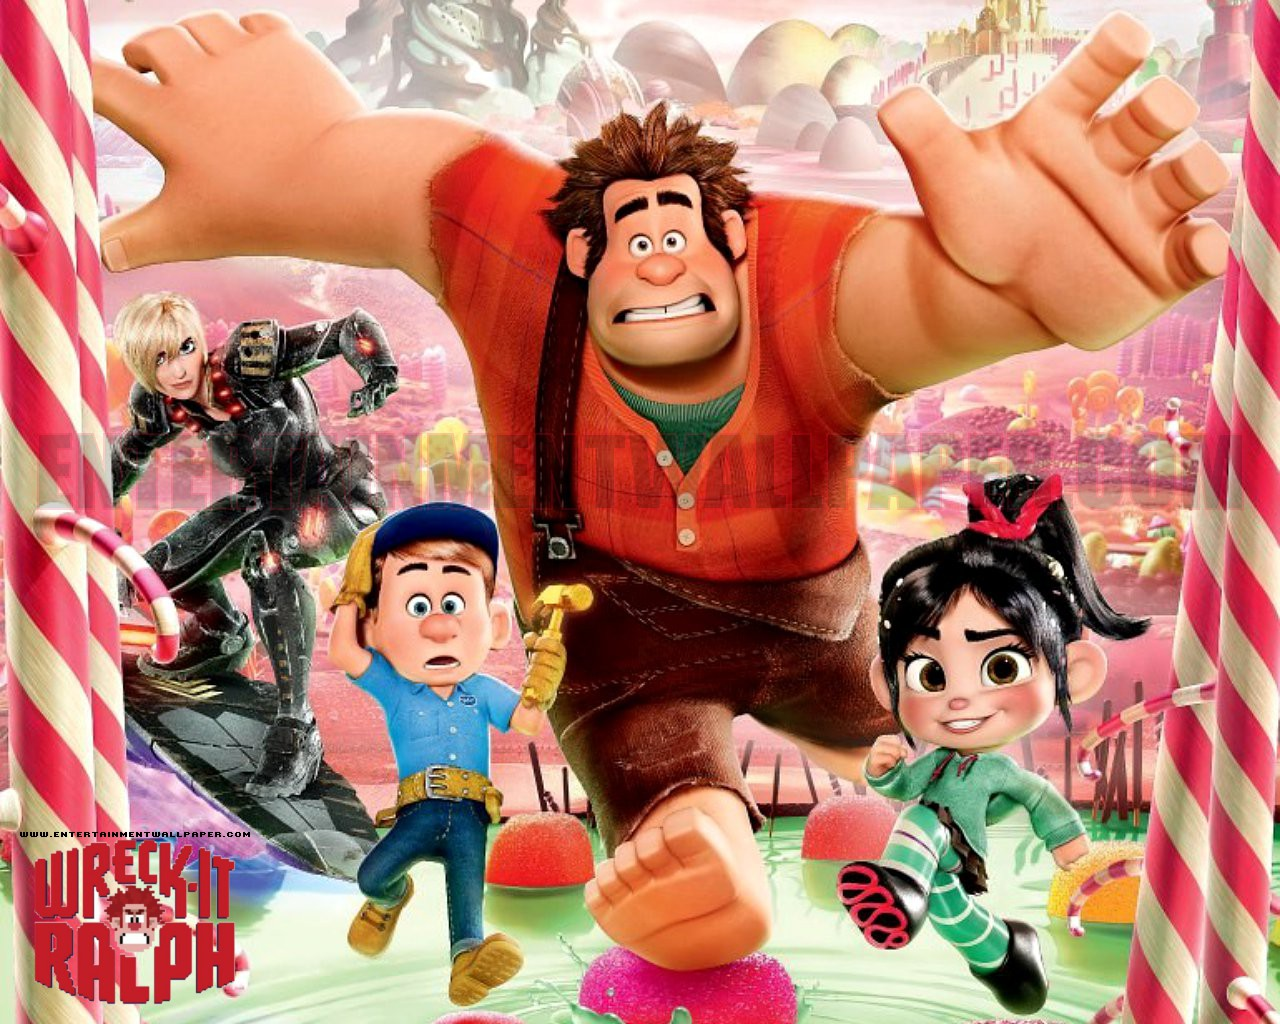 Wreck It Ralph Funny Picture Wreck It Ralph Funny Image Wreck It